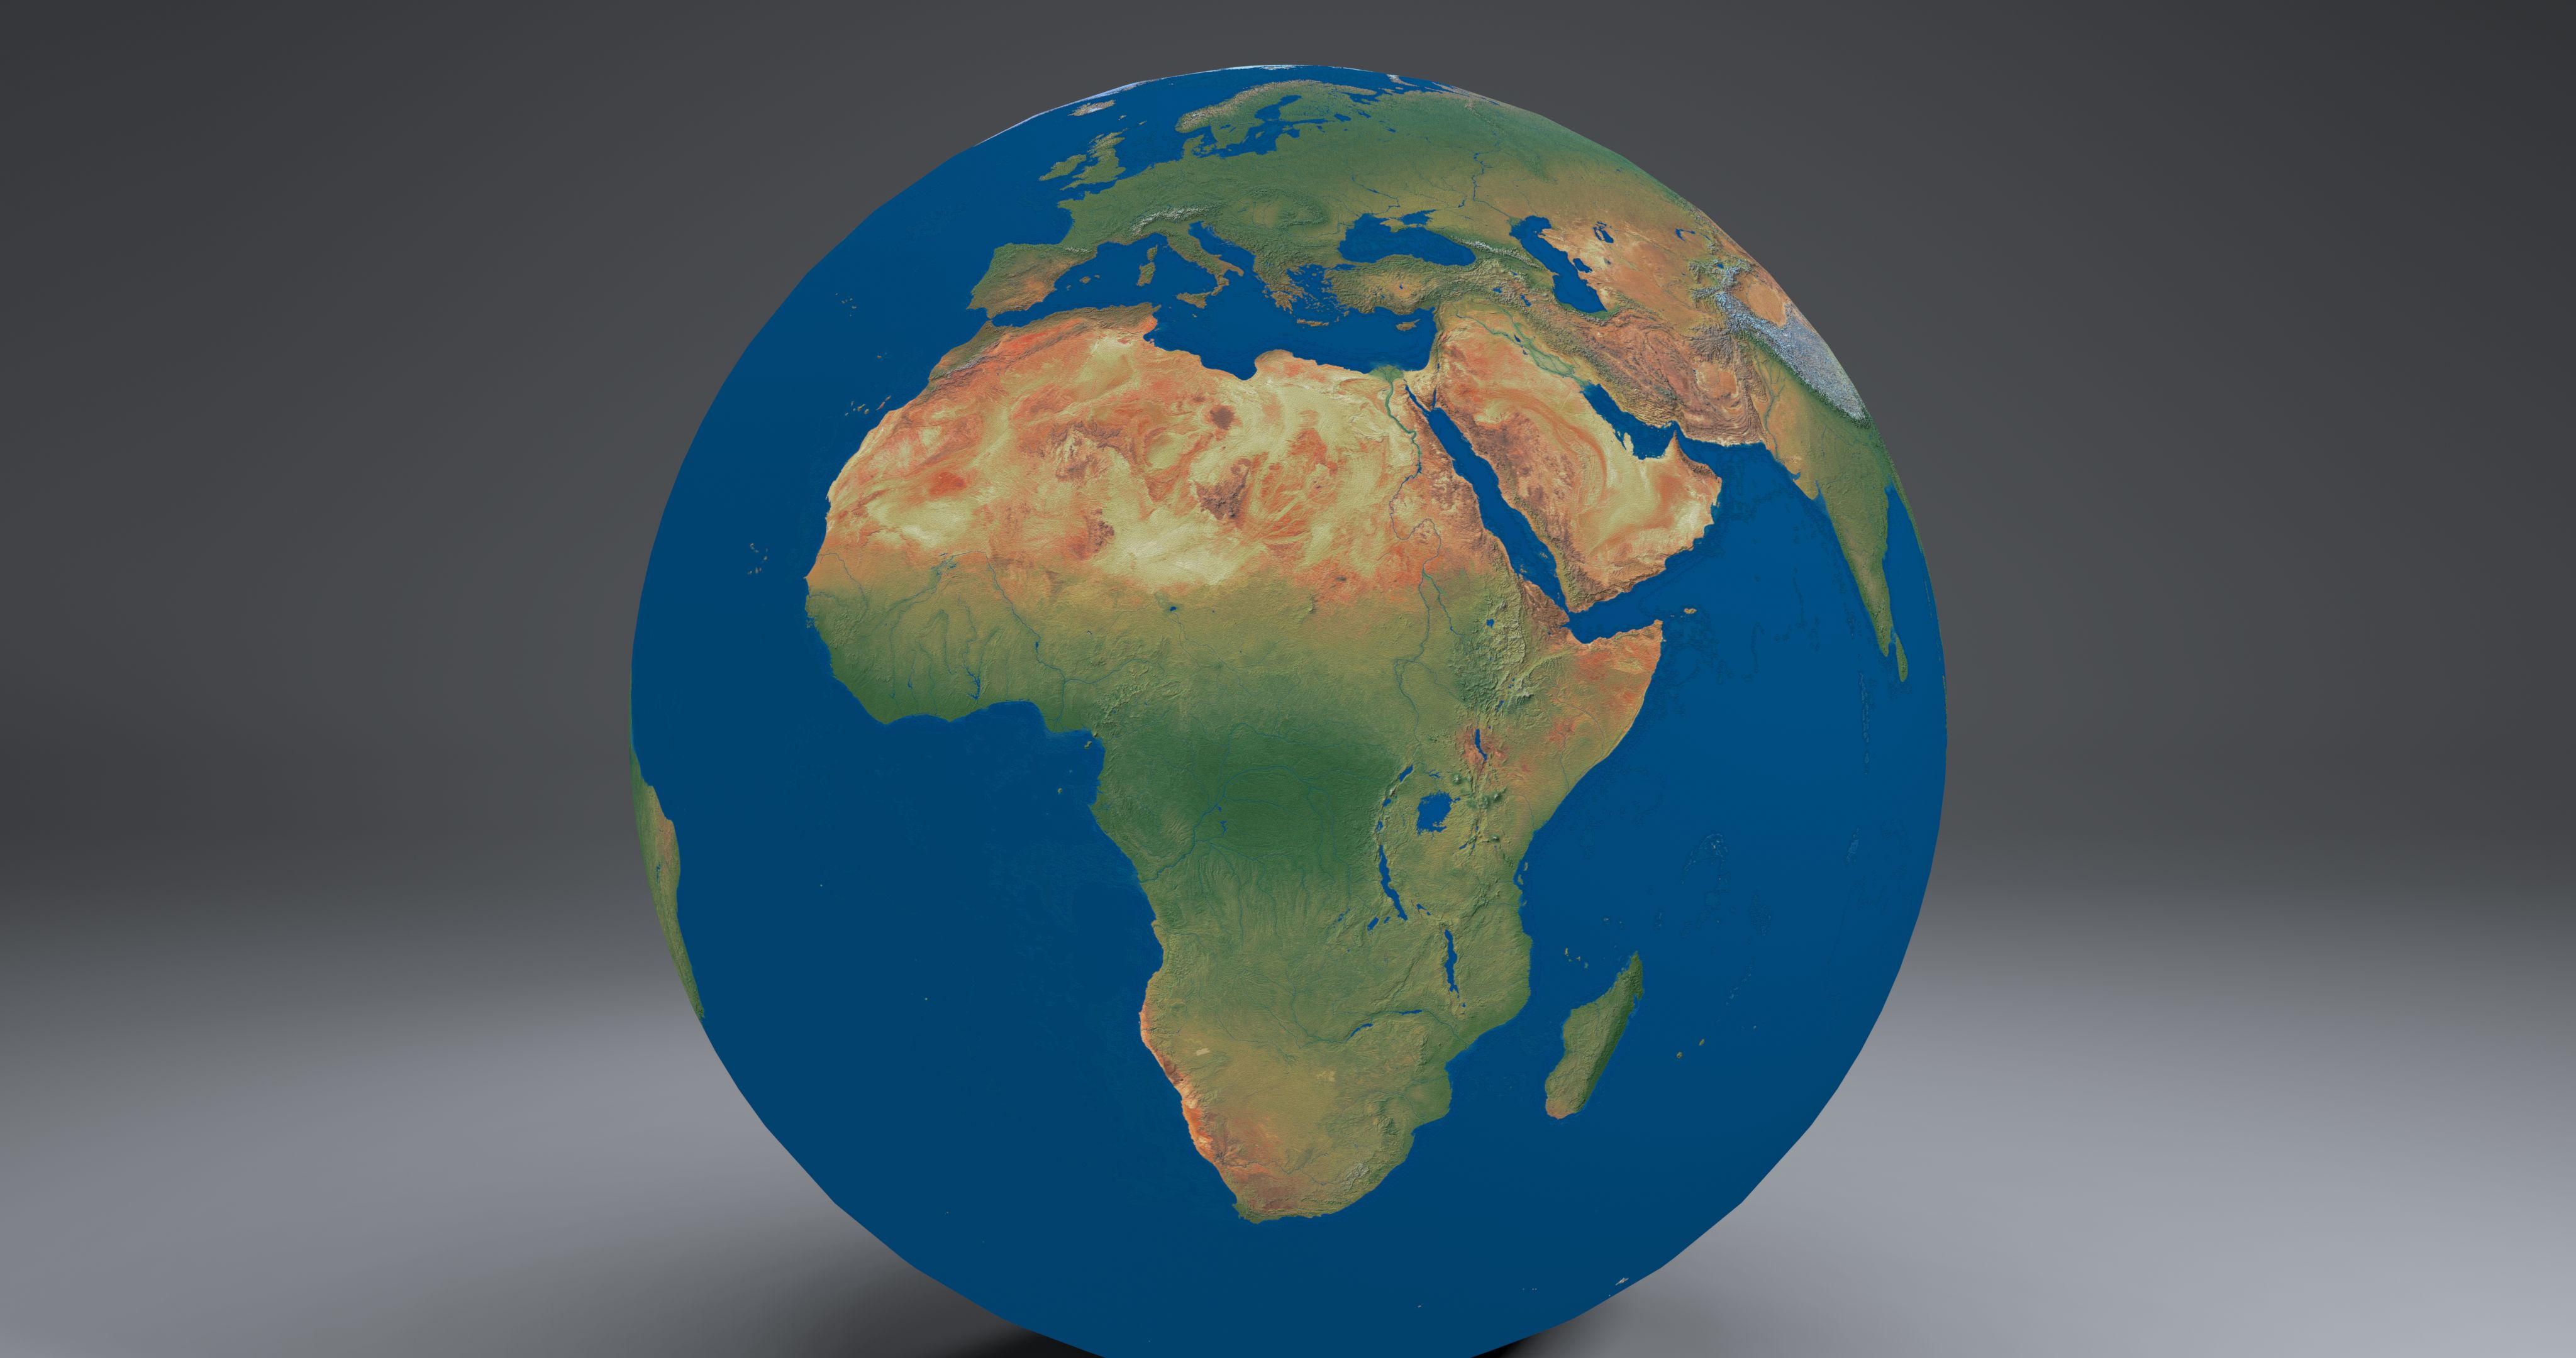 EarthGlobe16k 3d model 3ds fbx blend dae obj 212961